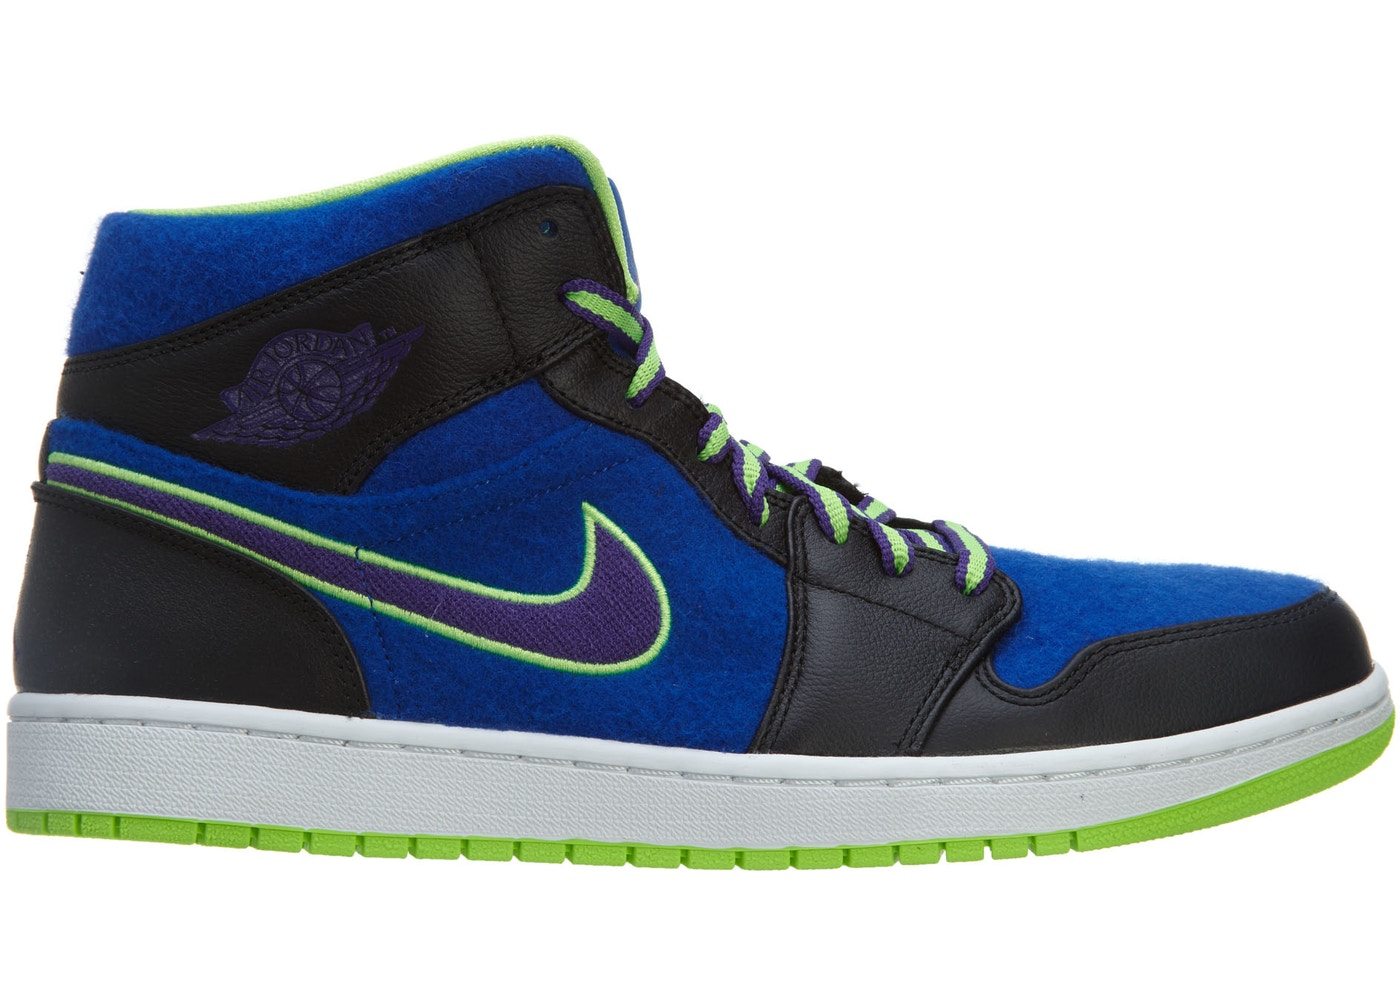 new product 8ad2e bcb01 Air Jordan 1 Mid Bel Air